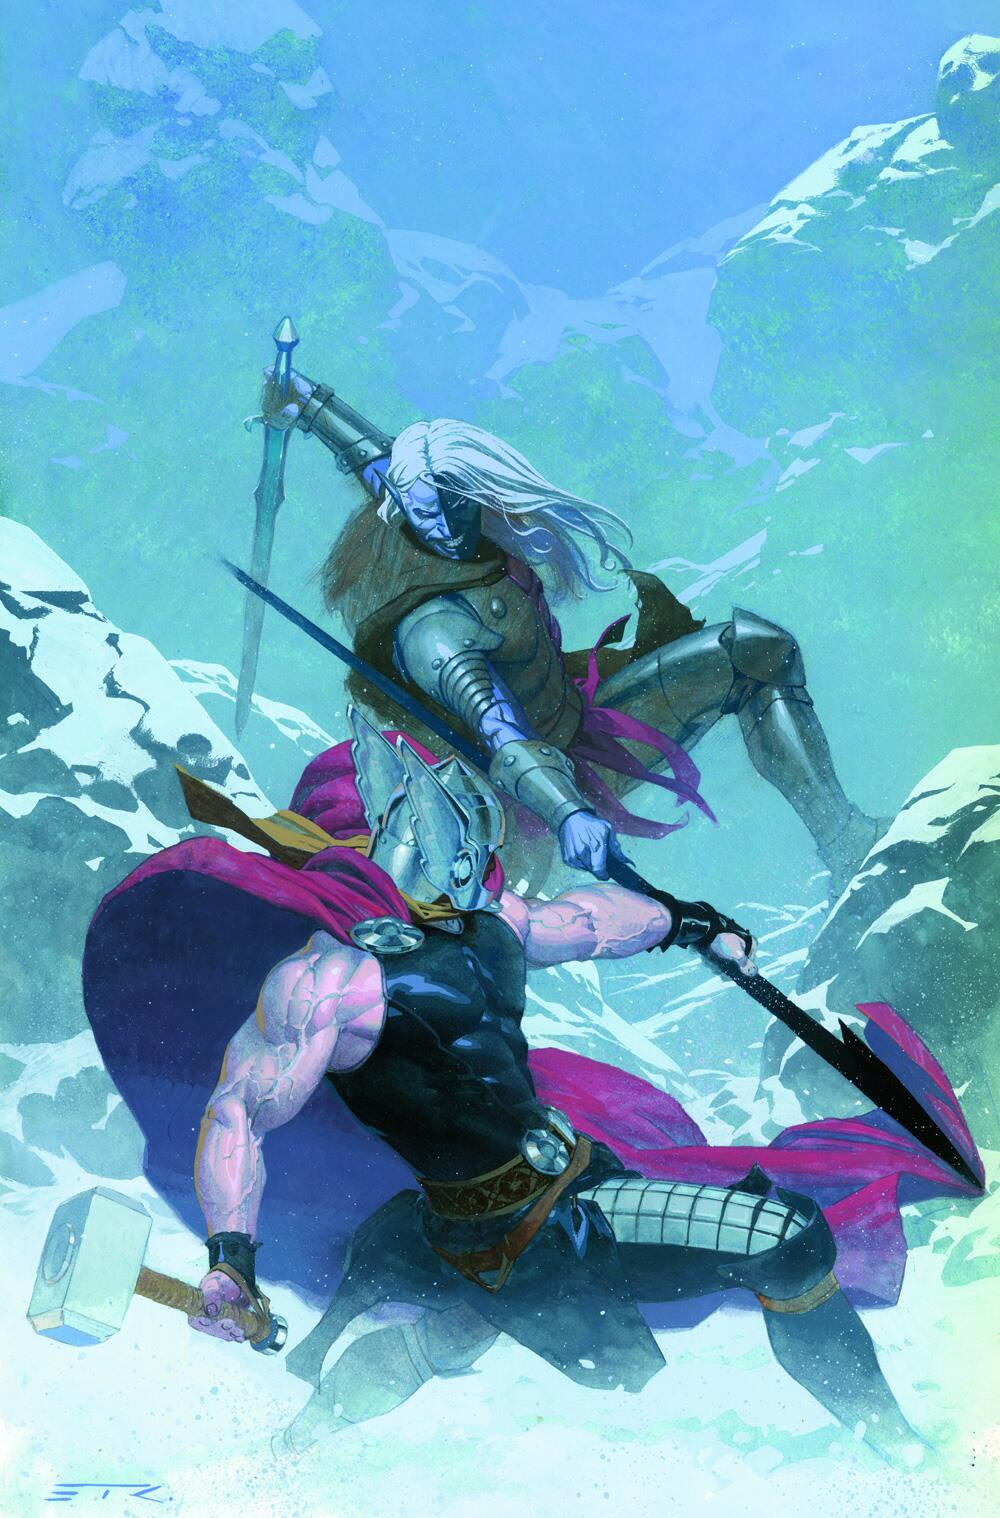 http://vignette1.wikia.nocookie.net/marveldatabase/images/0/0a/Thor_God_of_Thunder_Vol_1_16_Textless.jpg/revision/latest?cb=20131114184351